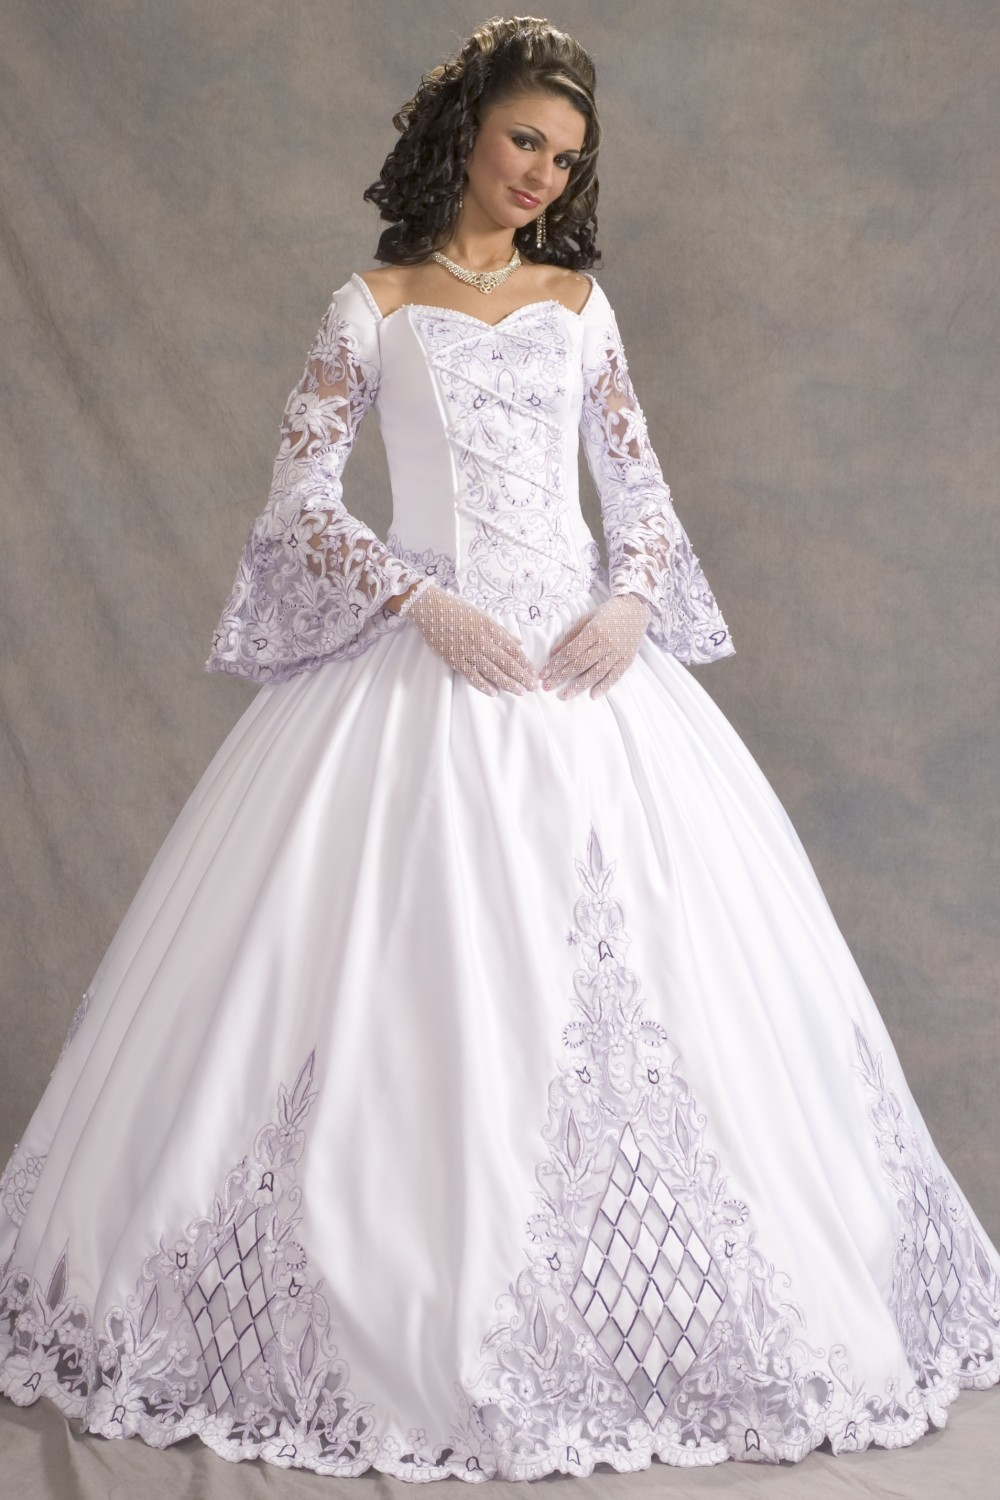 Ball Gown Wedding Dresses With Long Sleeves : Royal lace long trumpet sleeves ball gown wedding dress g